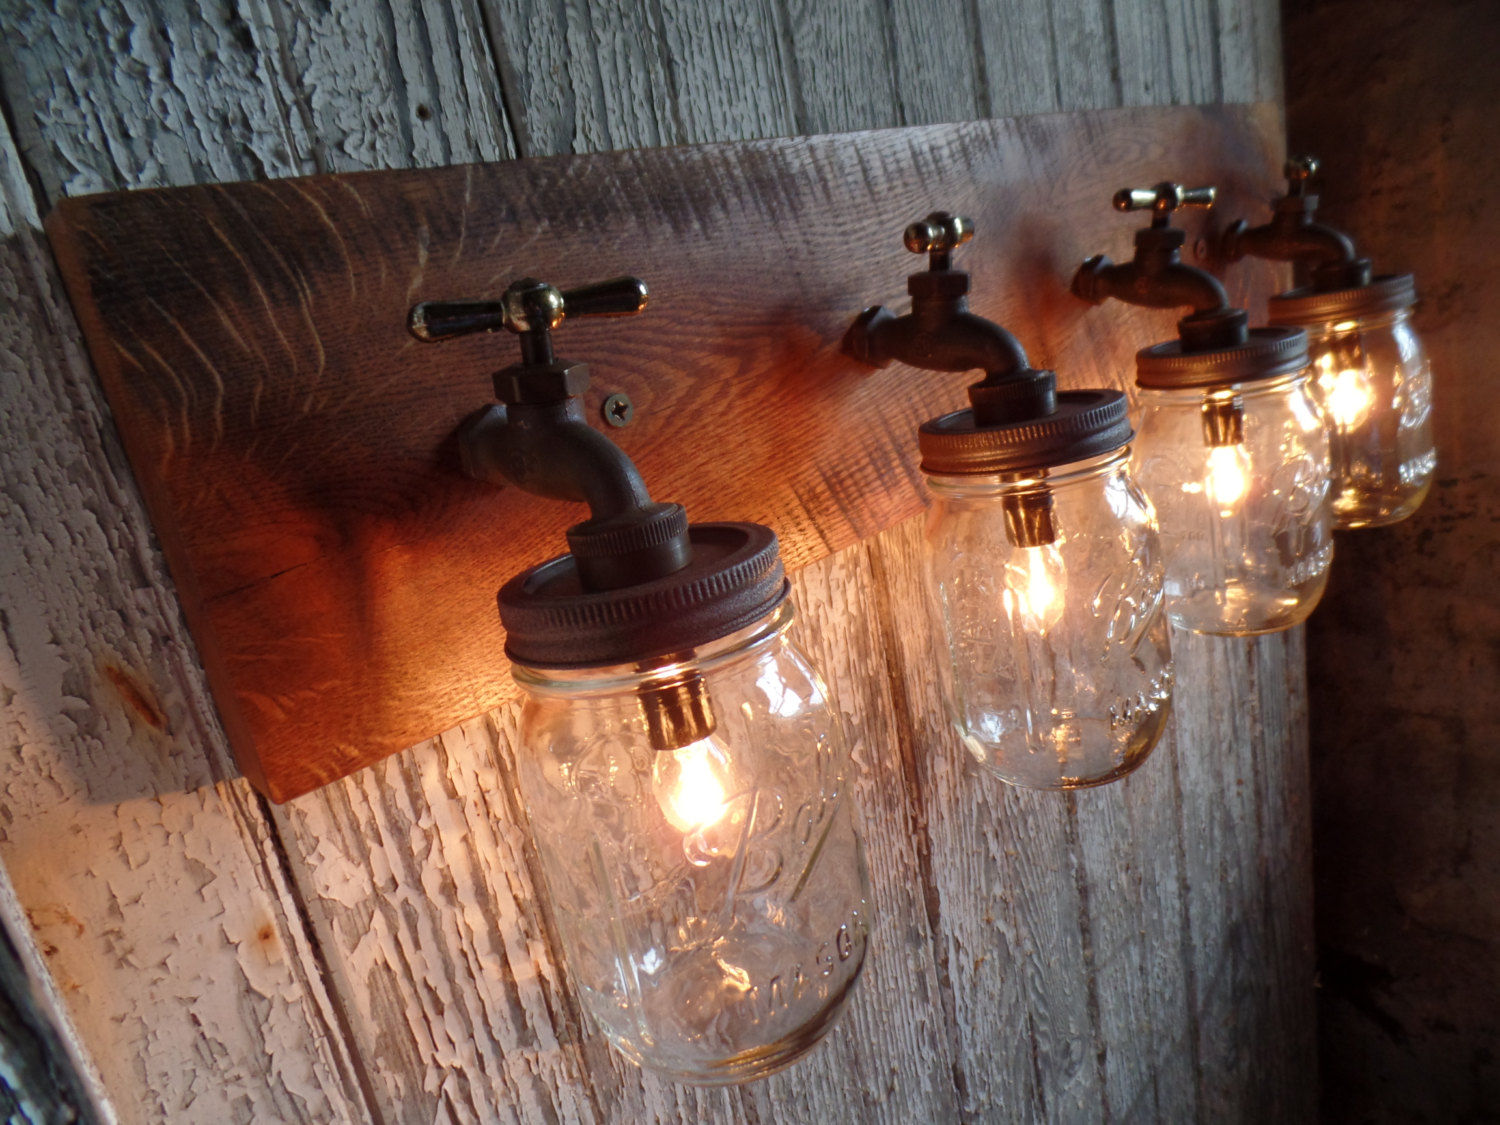 Upcycled Lighting - Unique handmade chandeliers, lamps, and more!